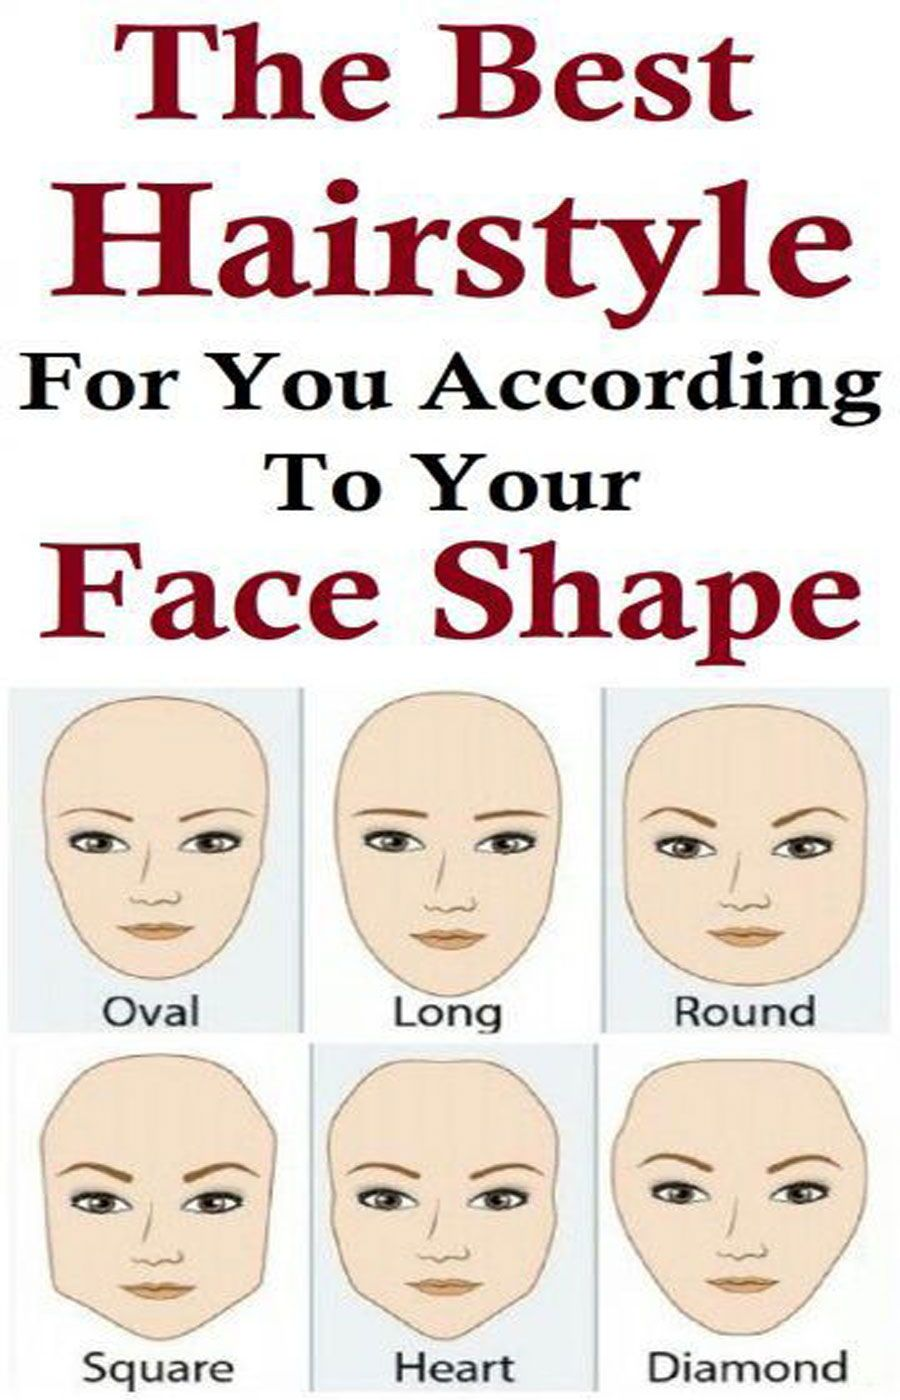 6f7f1d05efcd7320e8f16f925ffb0bb0 - How To Get The Perfect Haircut For Your Face Shape